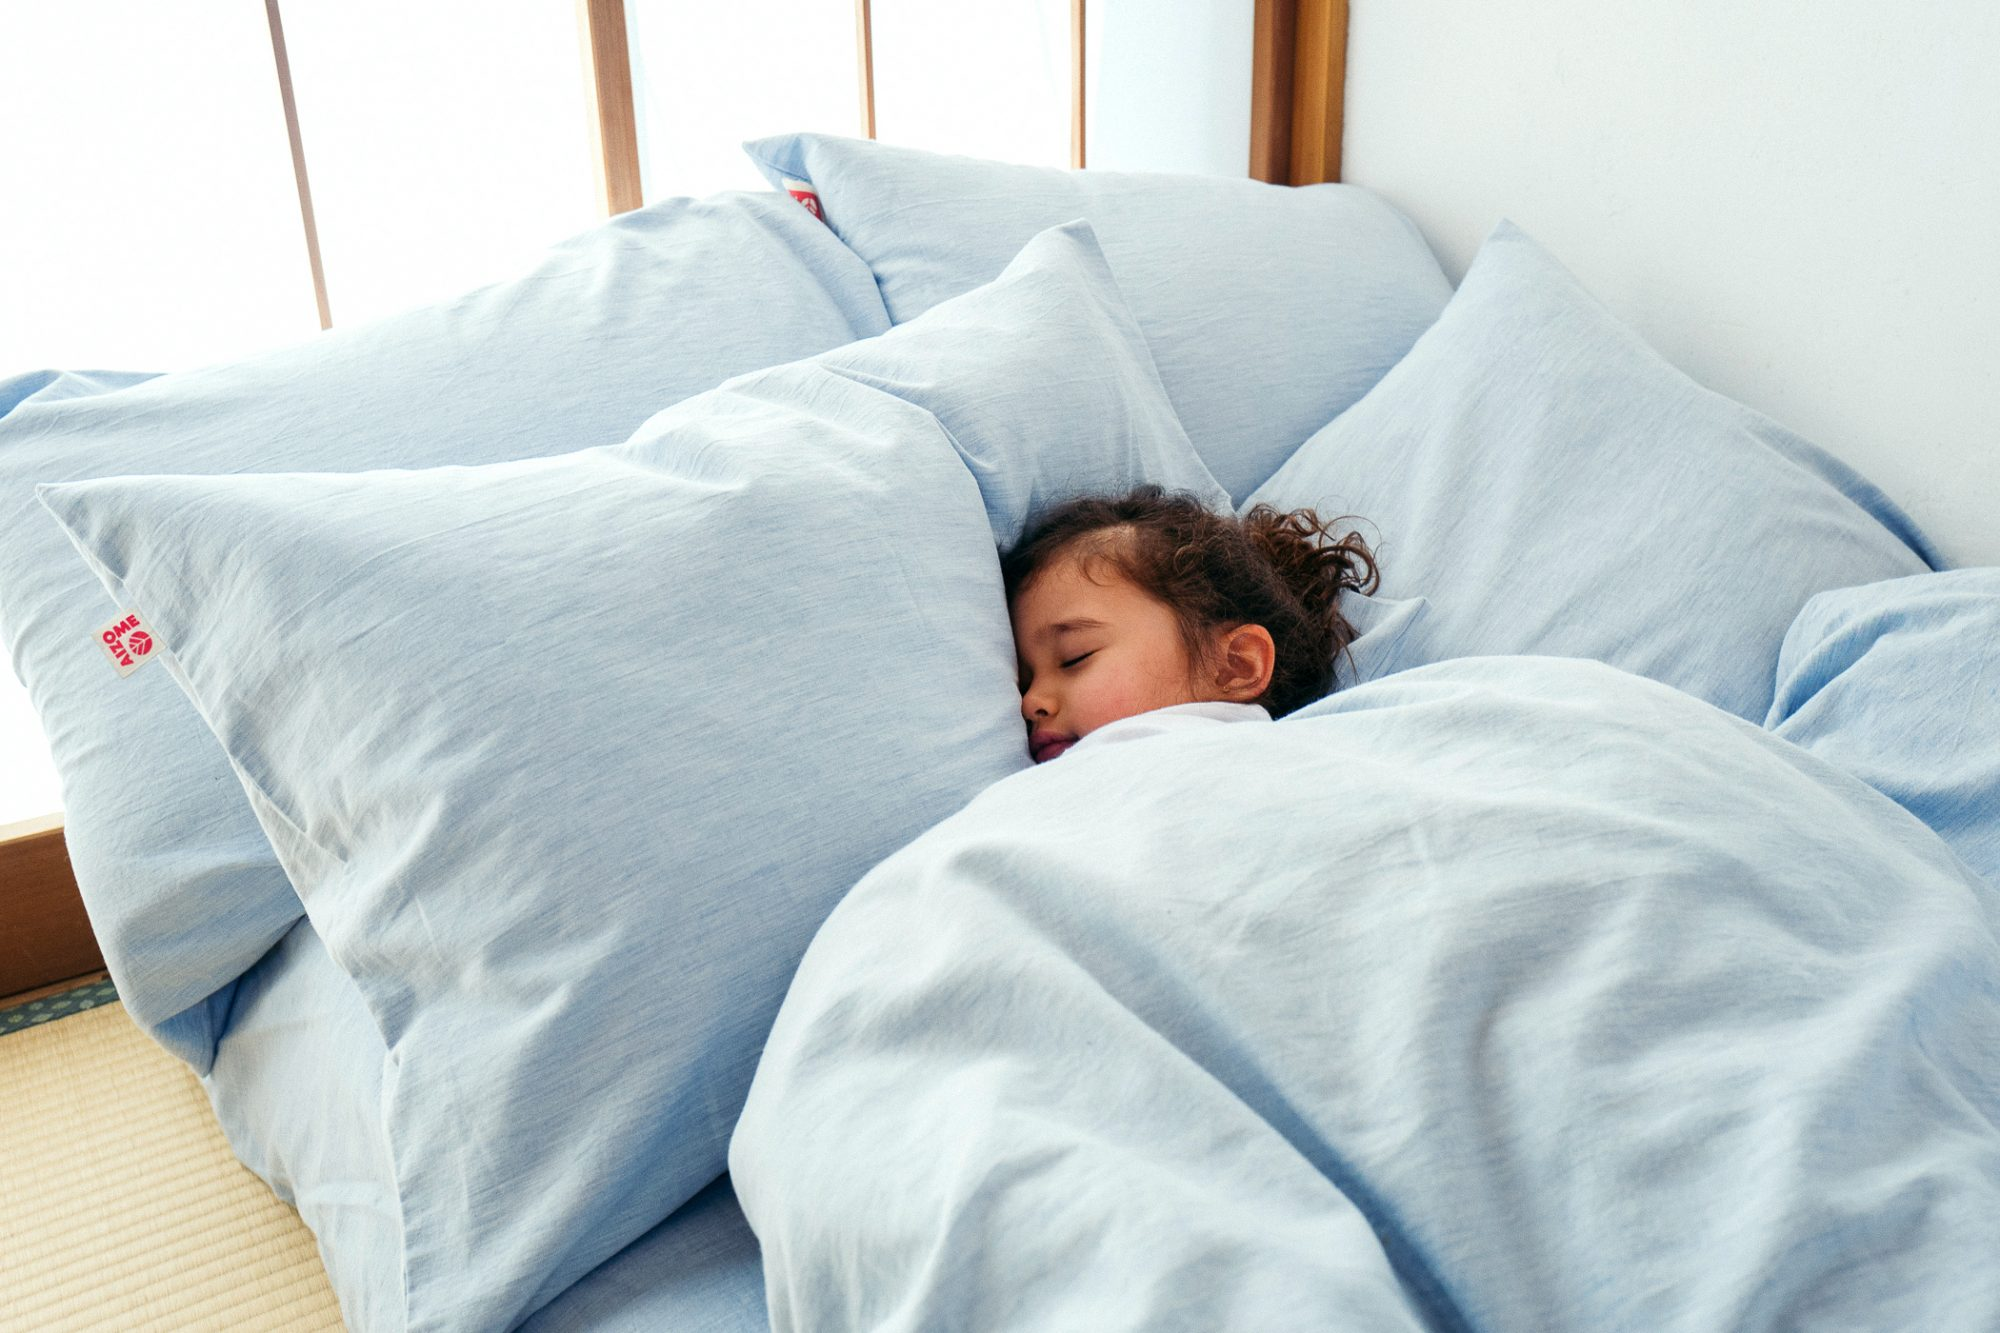 We Finally Found It: The Best Bedding for Those with Sensitive Skin or Allergies